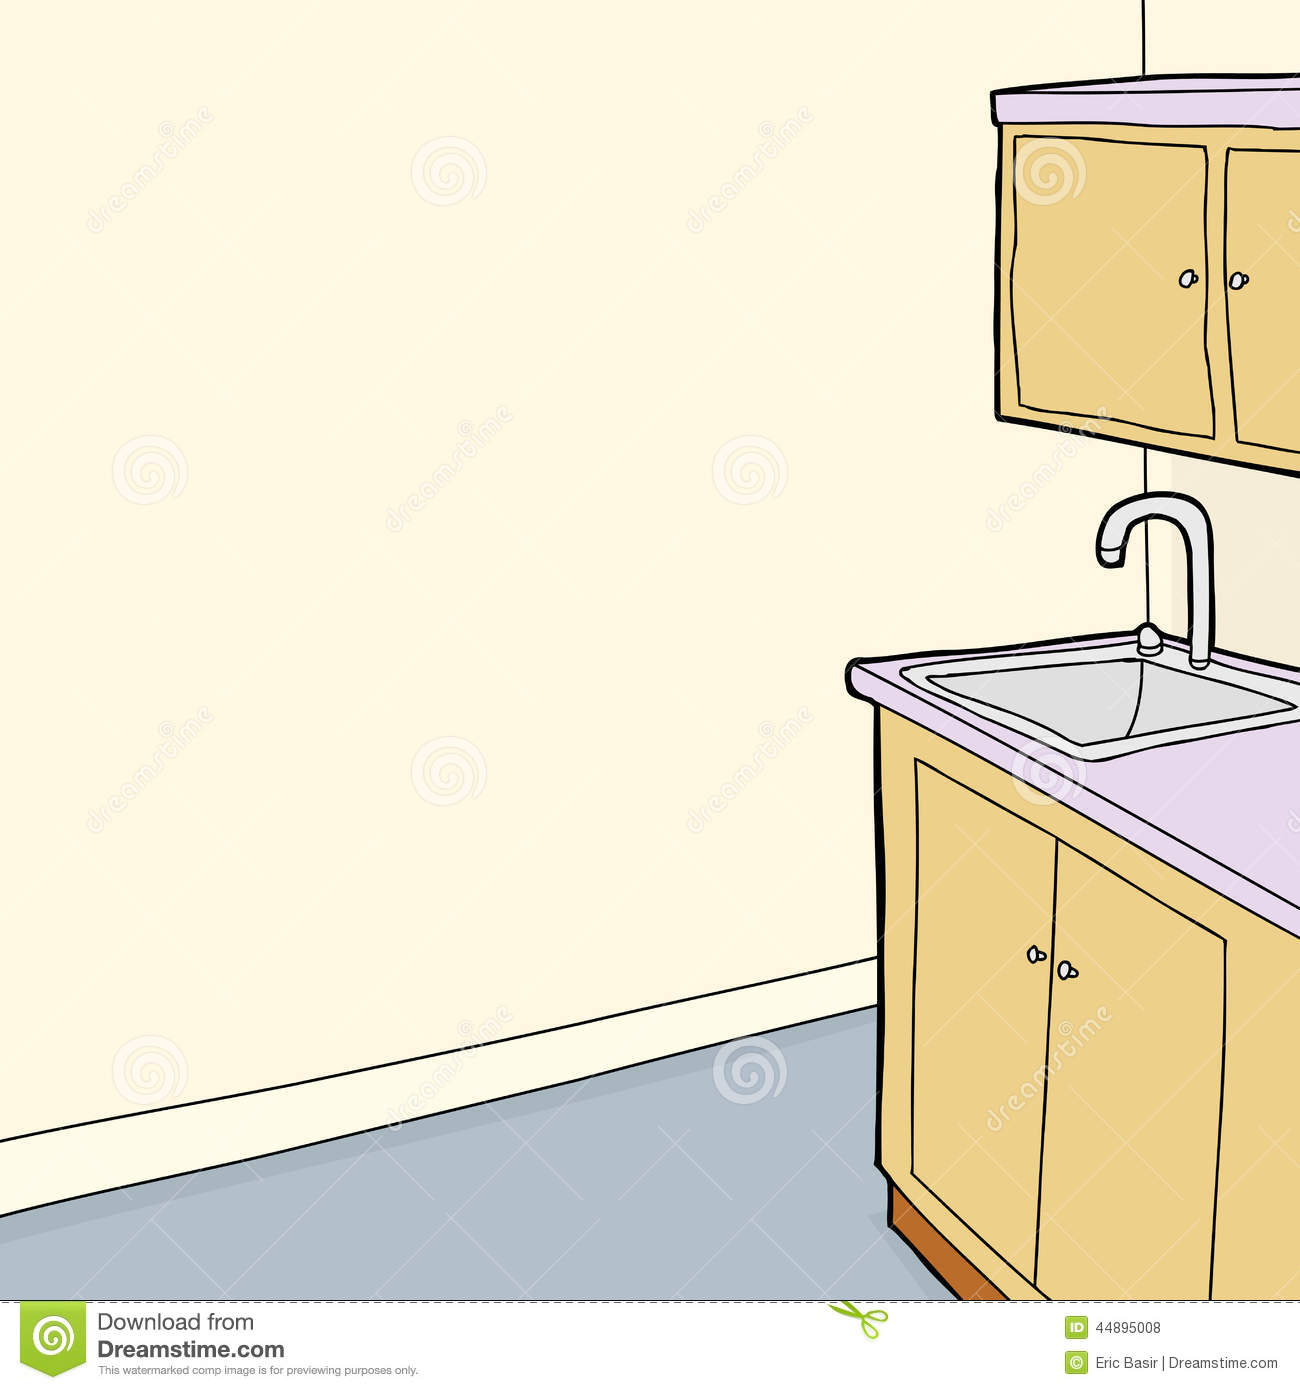 Sink Blank : bathroom cabinet and sink sink and cabinet in room stock vector image ...